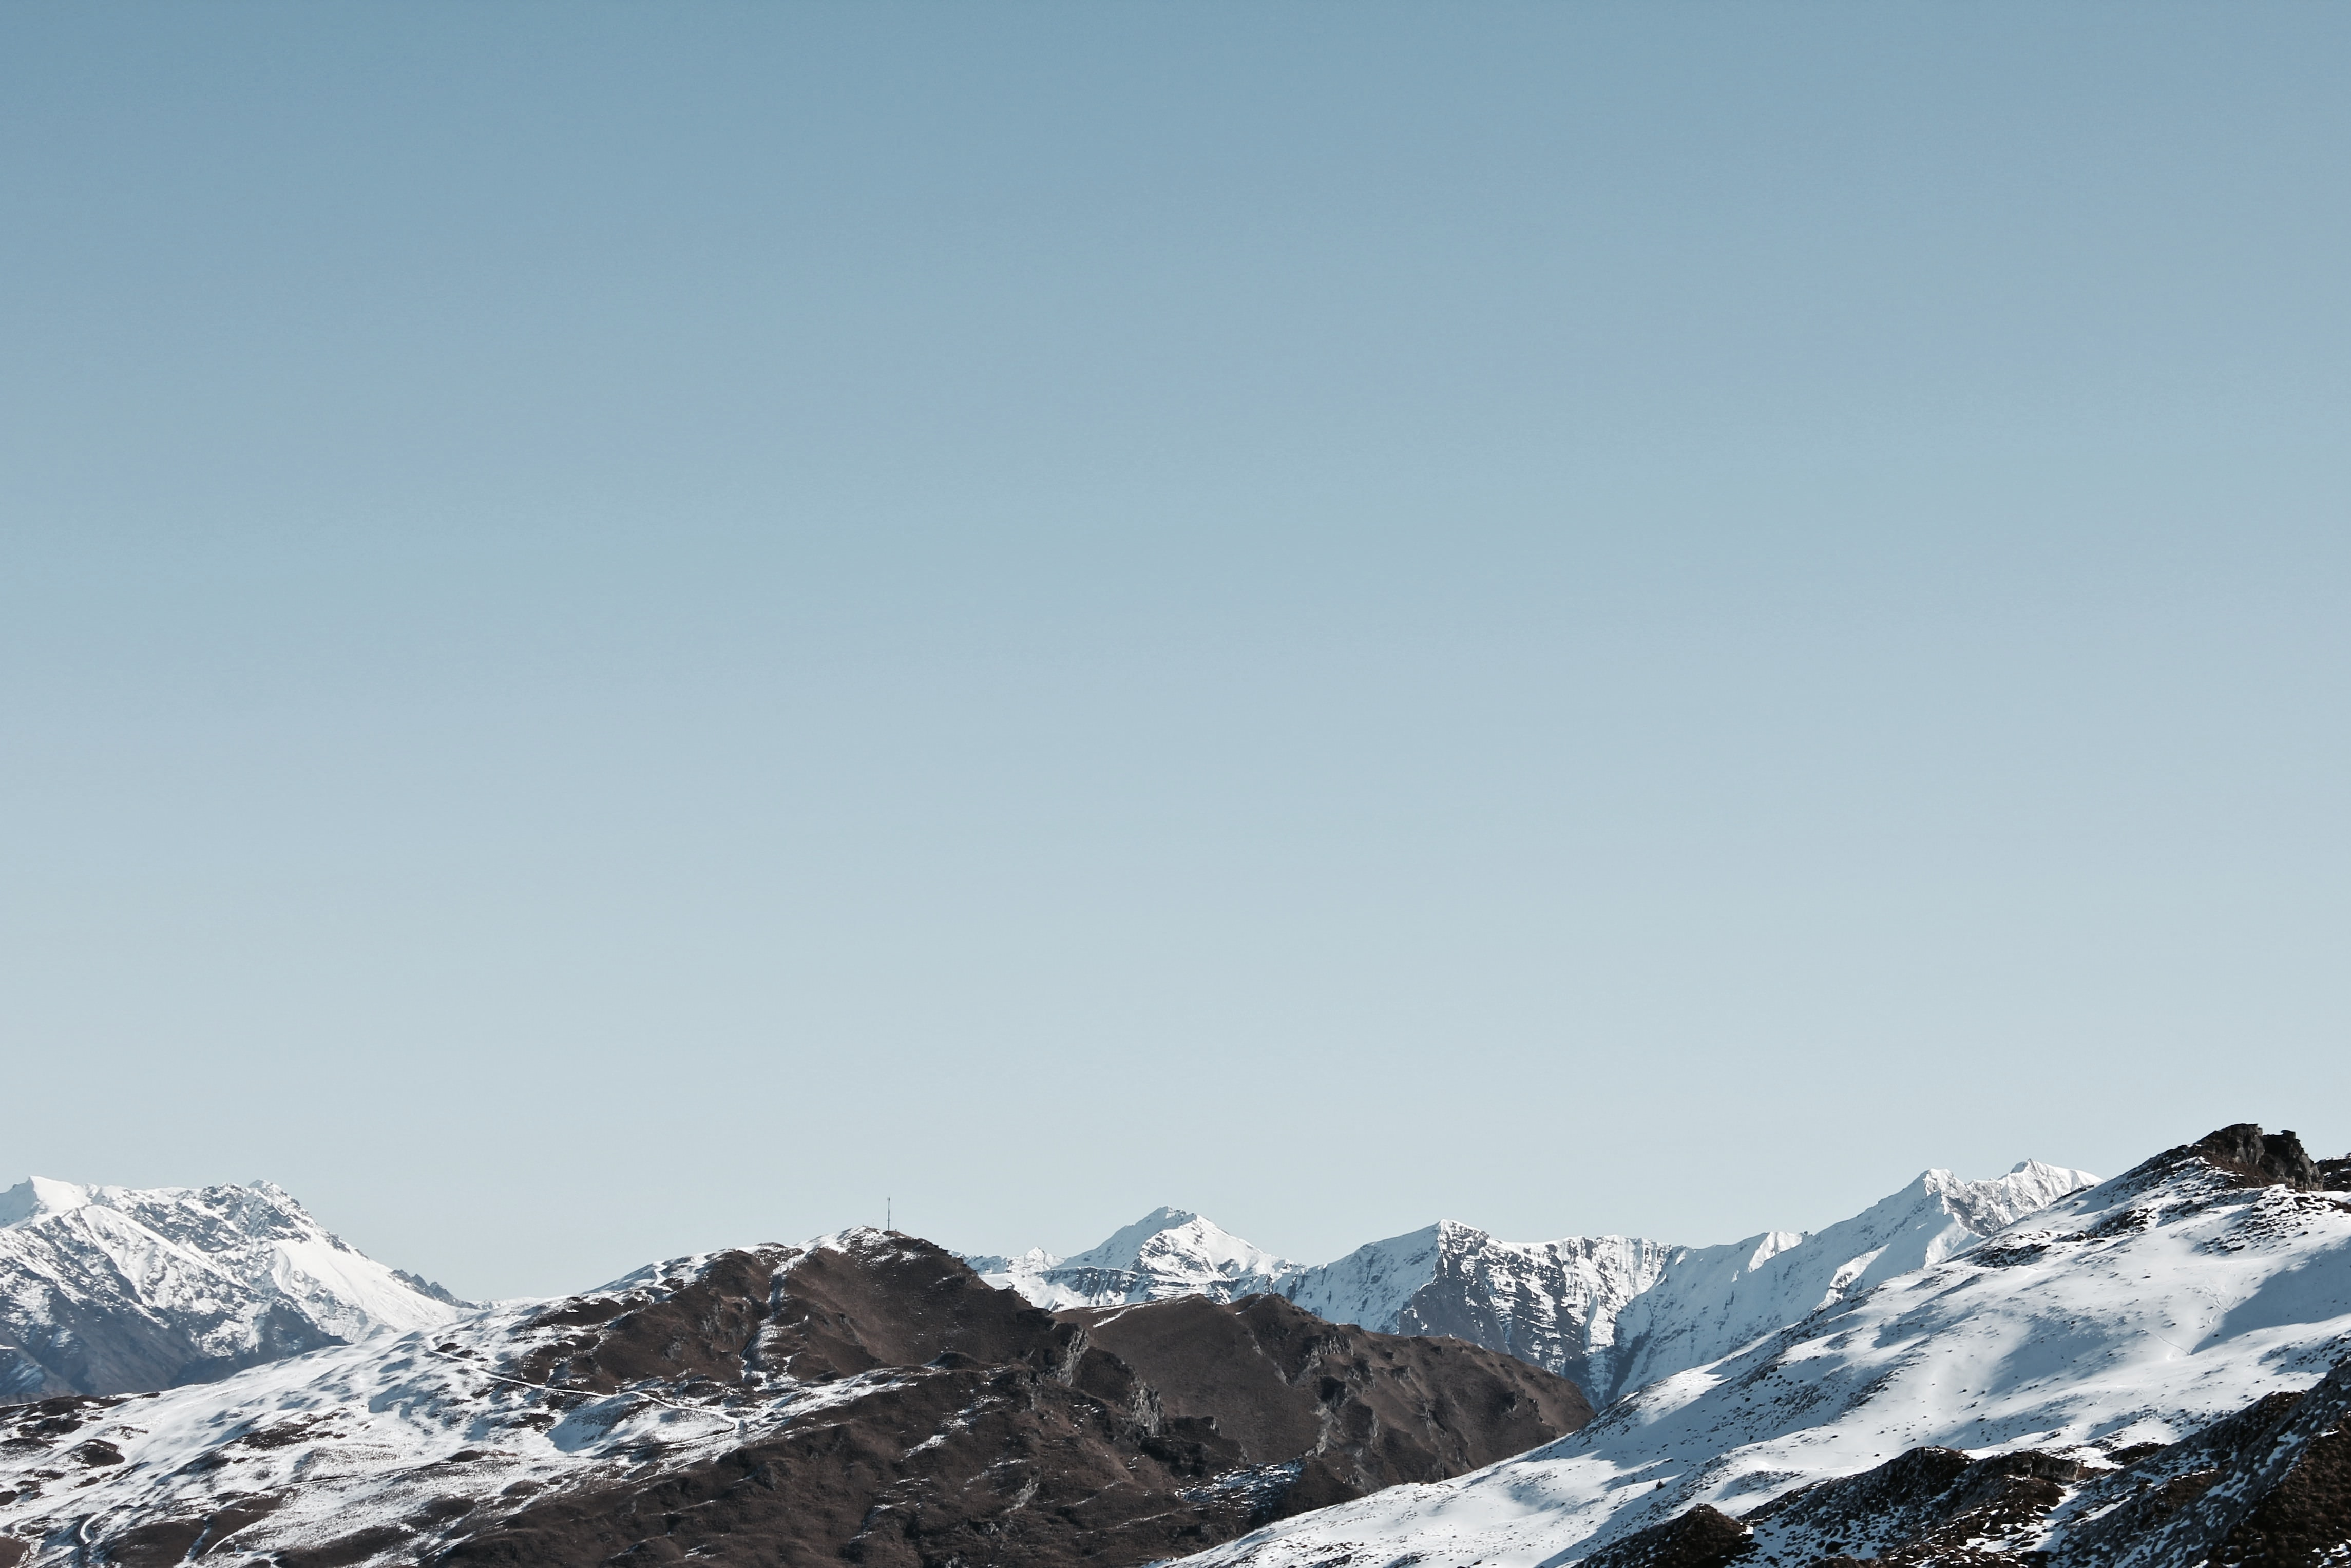 A mountain range dusted with snow under a pale blue sky